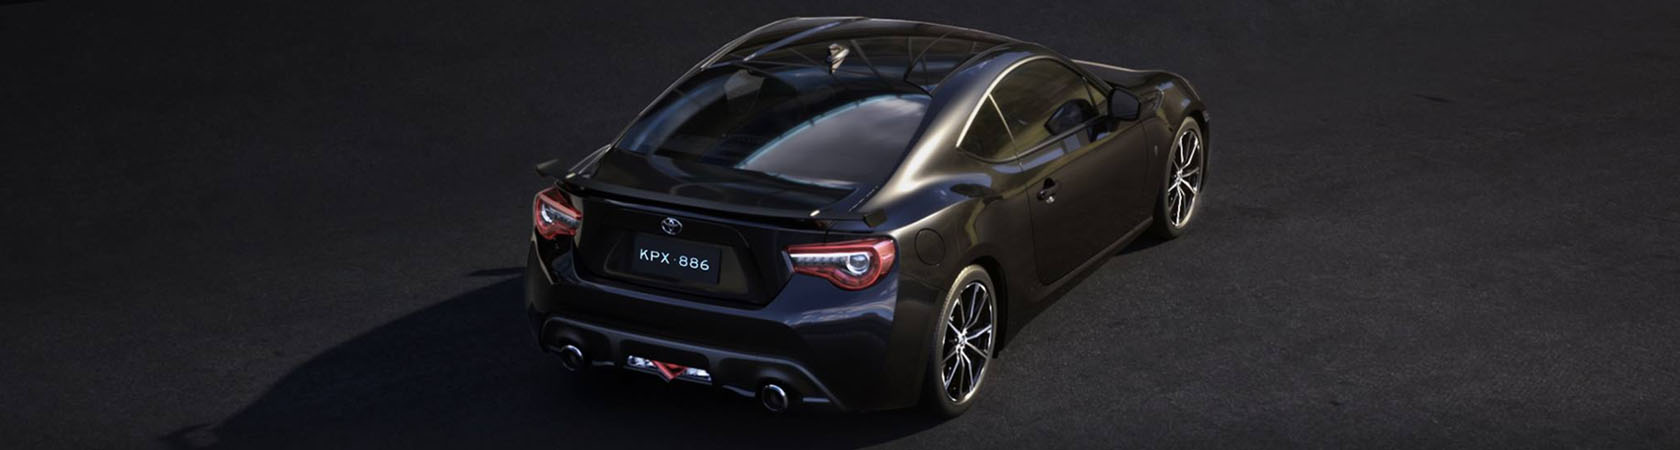 Macquarie Toyota 86